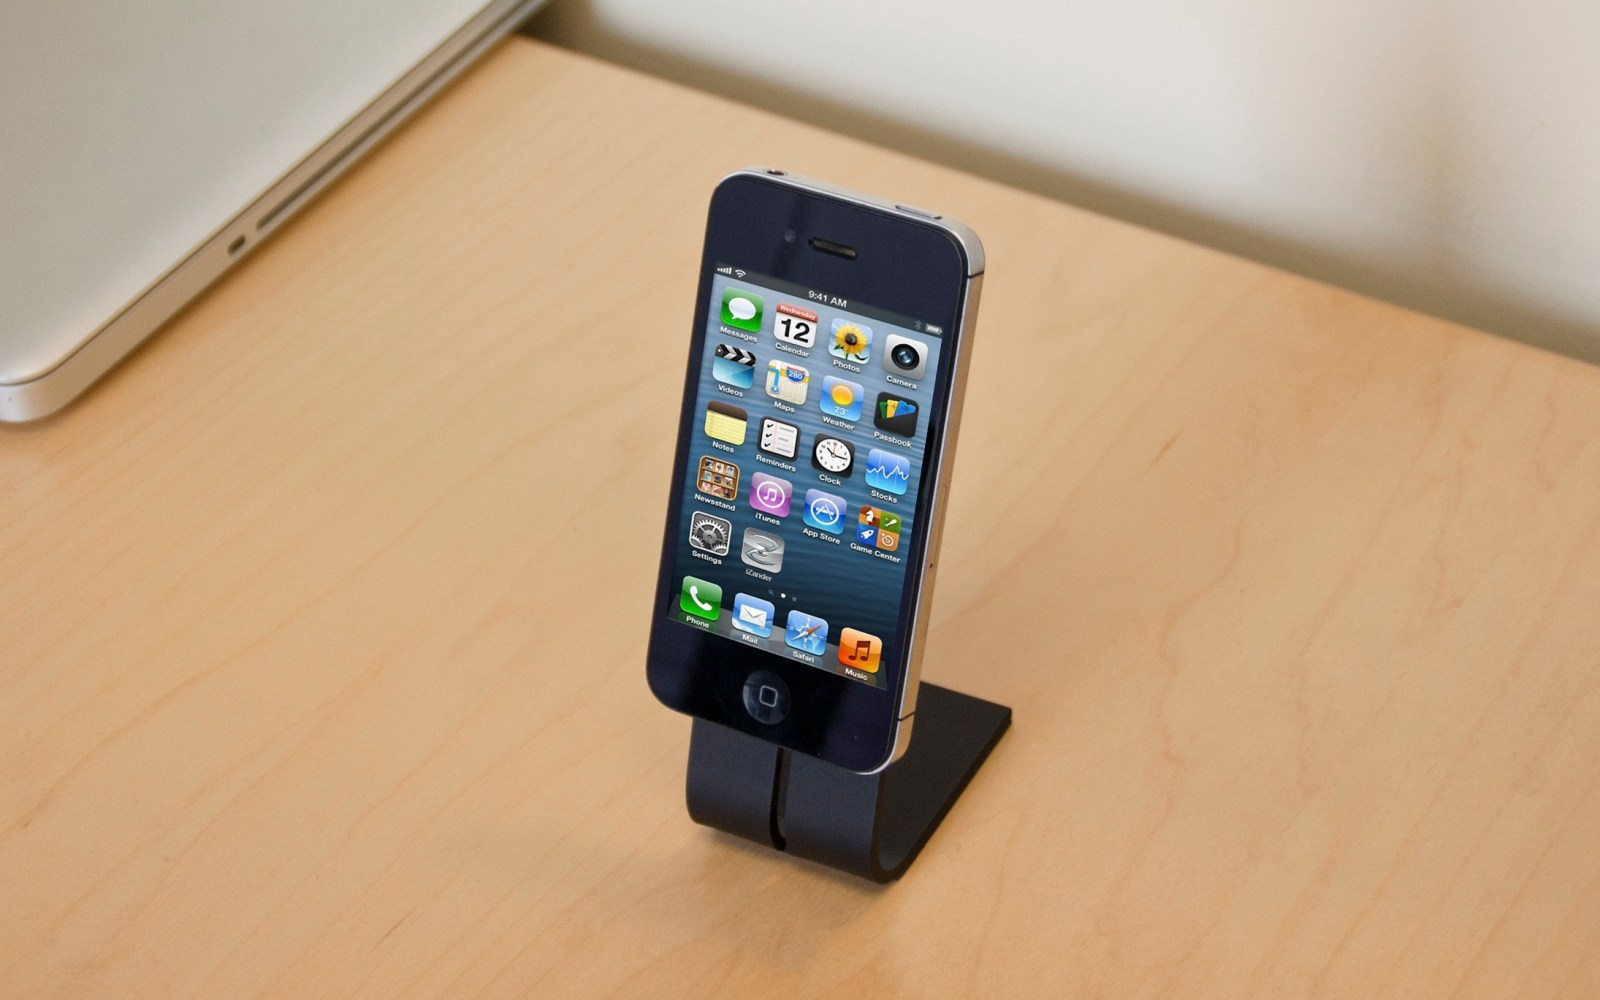 The micro-suction dock that appears to defy gravity [Review]